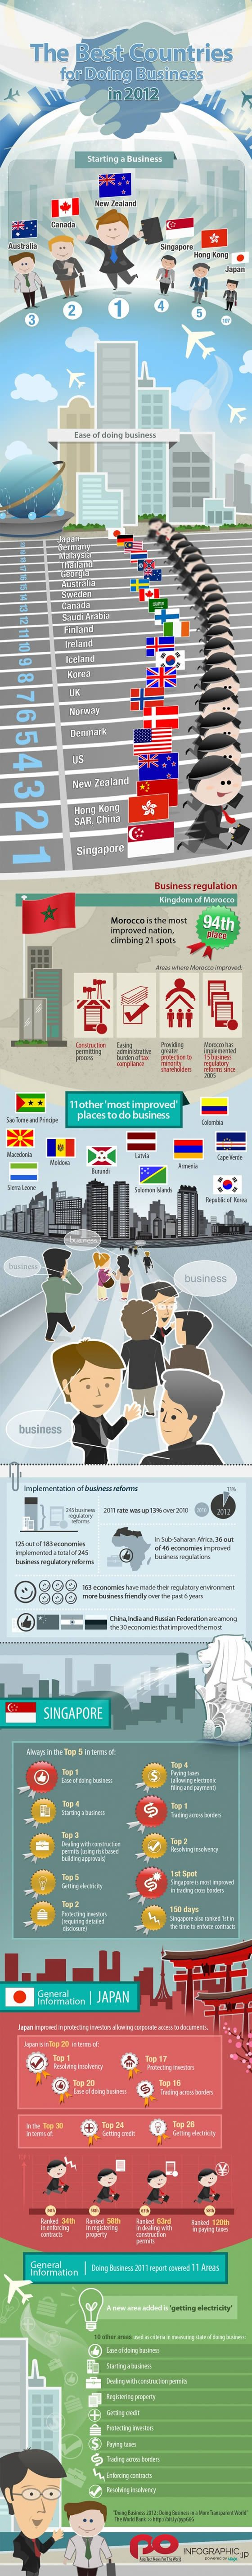 #Business: Hacer Negocio, Business 2012, For, En 2012, 2012 Infographic, Start A Business, Los Mejor, Business Infographic, Country